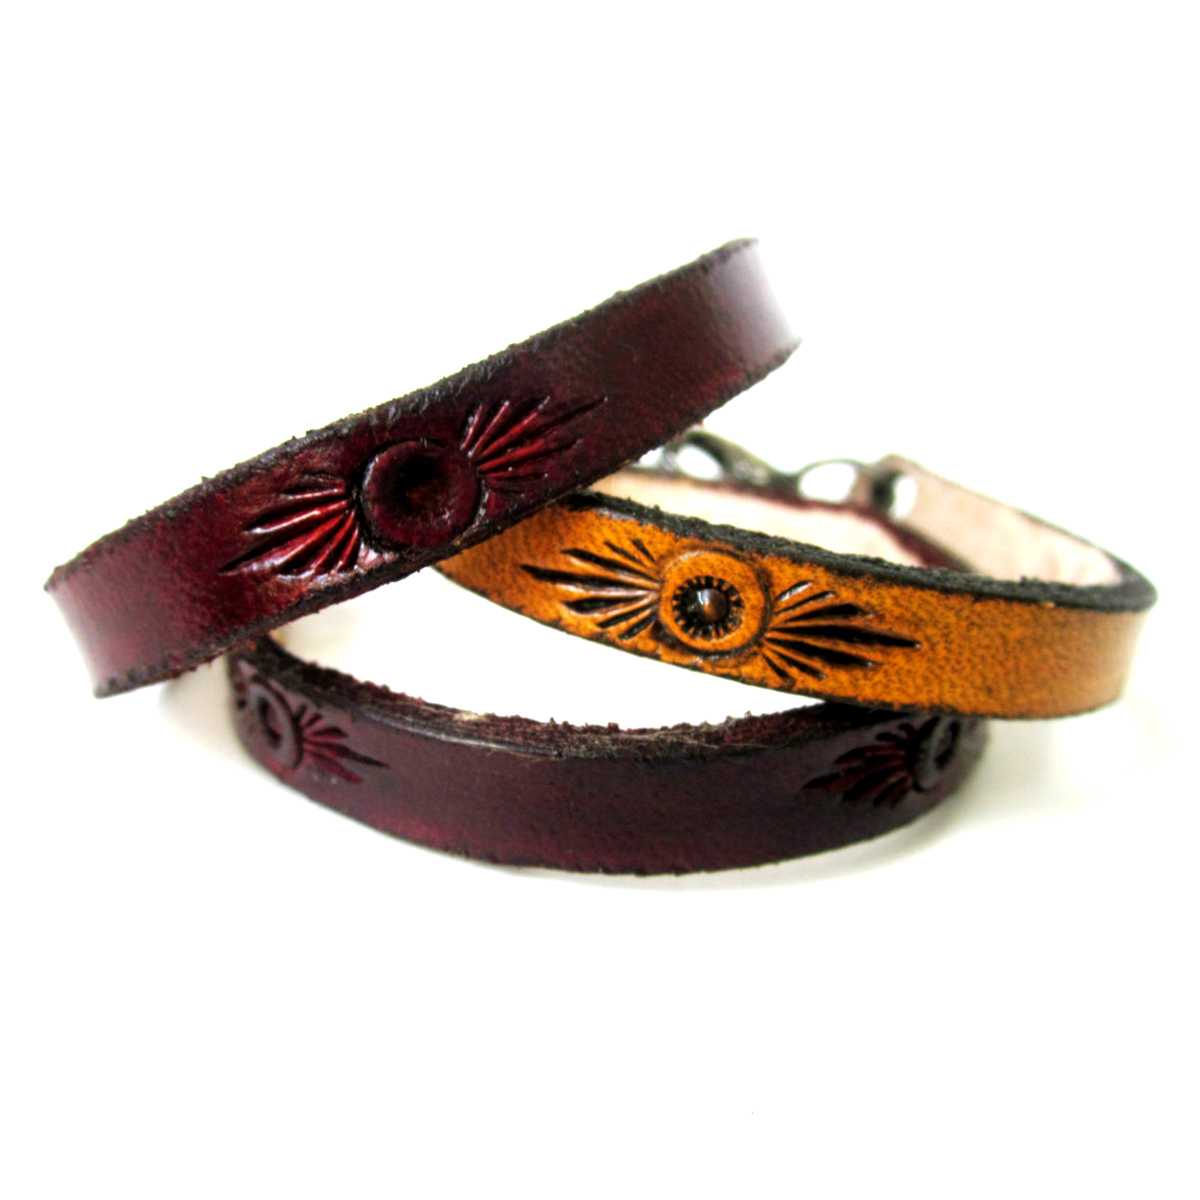 rustic-sun-thin-leather-bracelet-the-leather-smithy_22